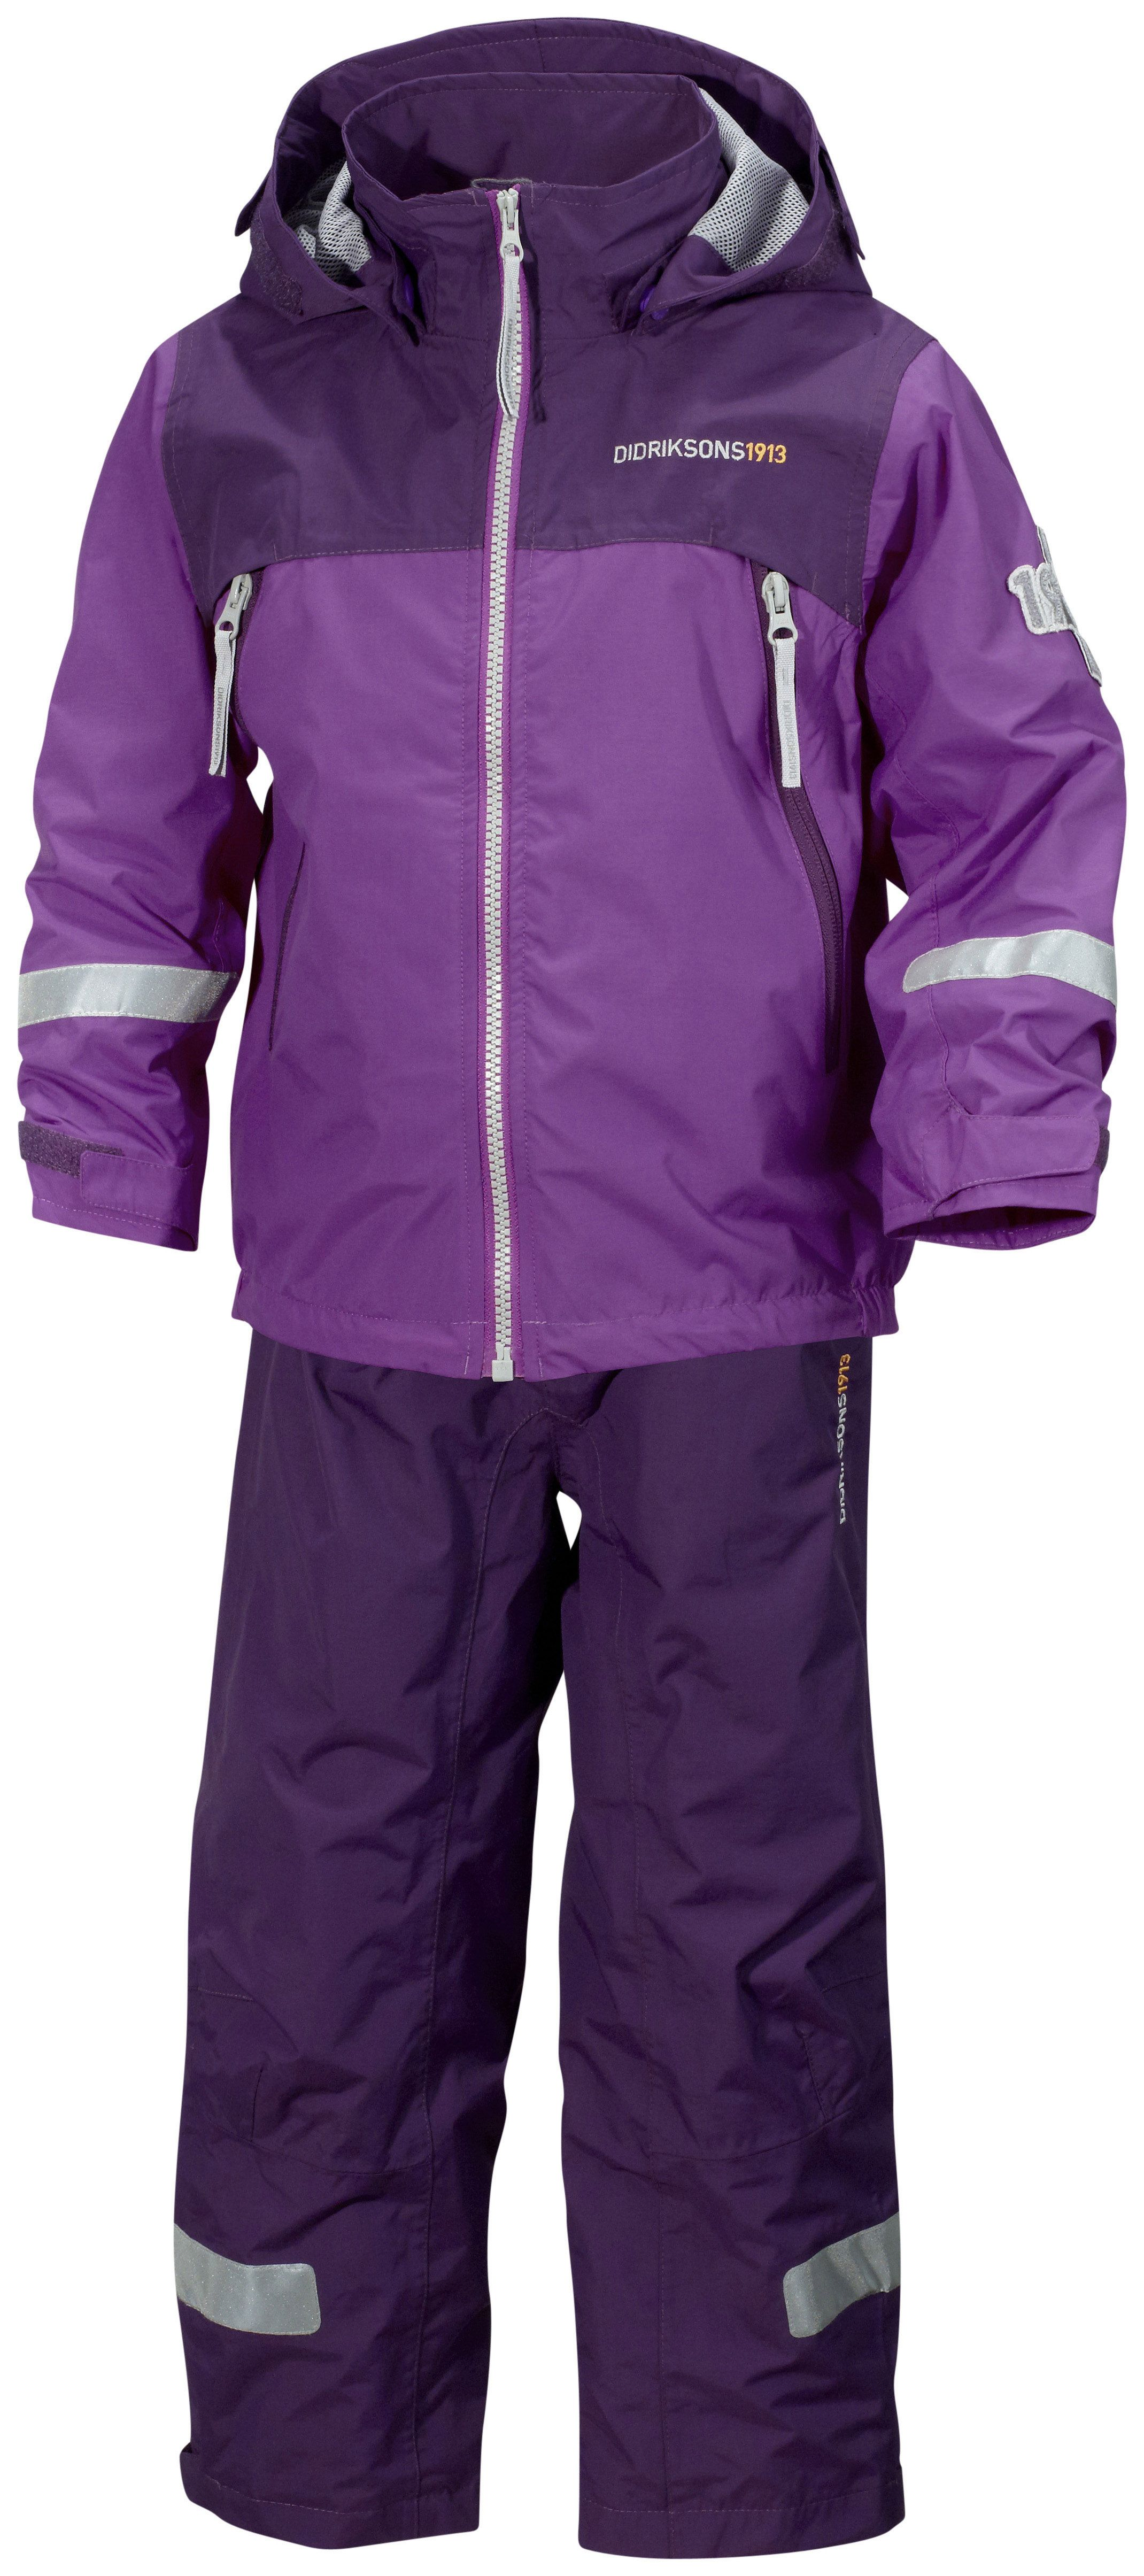 Overgangssæt fra Didriksons - All-weather  - Makalu - Amethyst